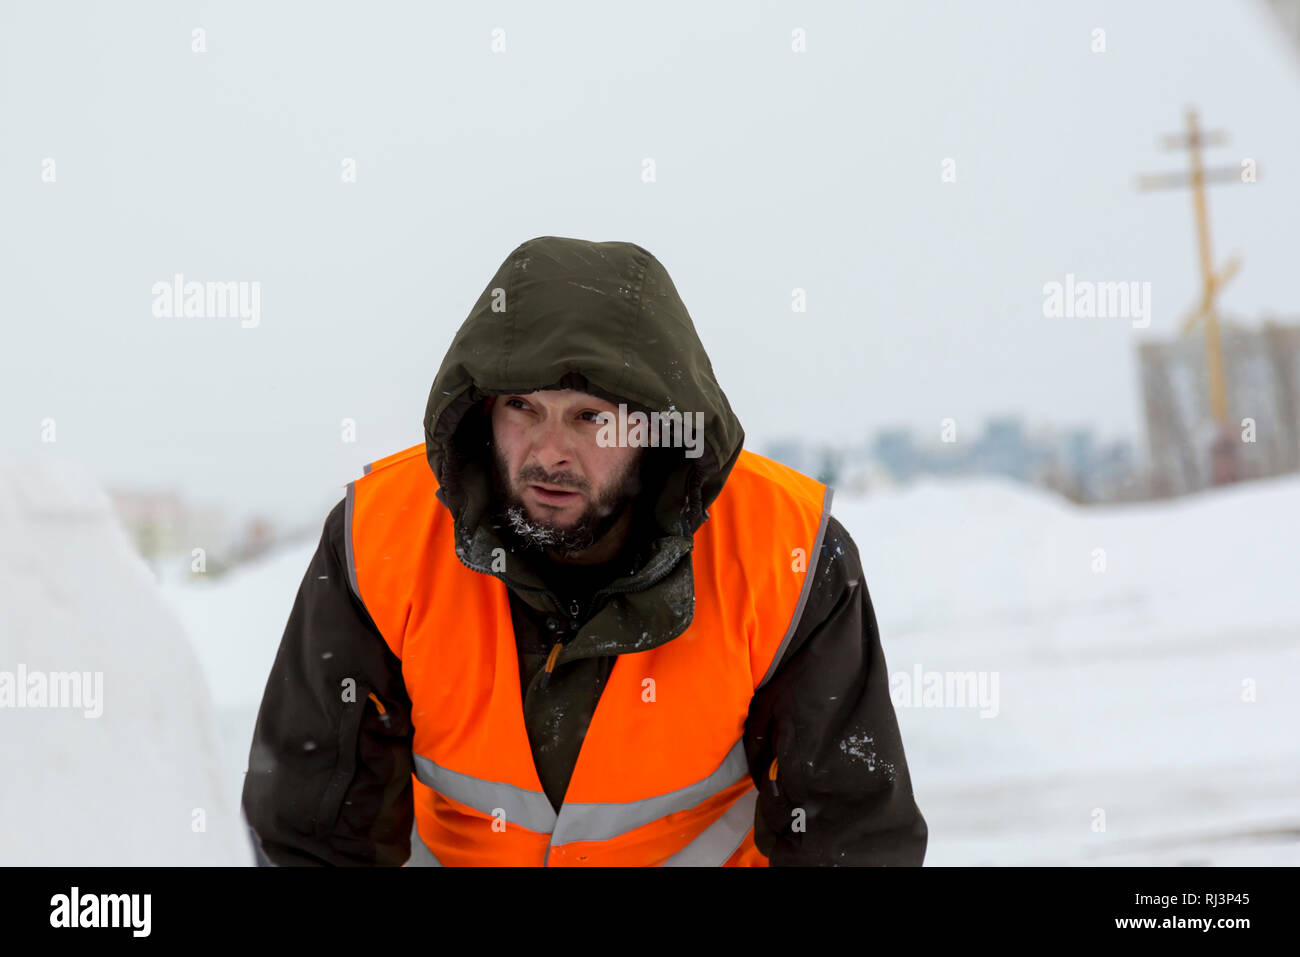 Portrait of installer in orange reflective vest - Stock Image